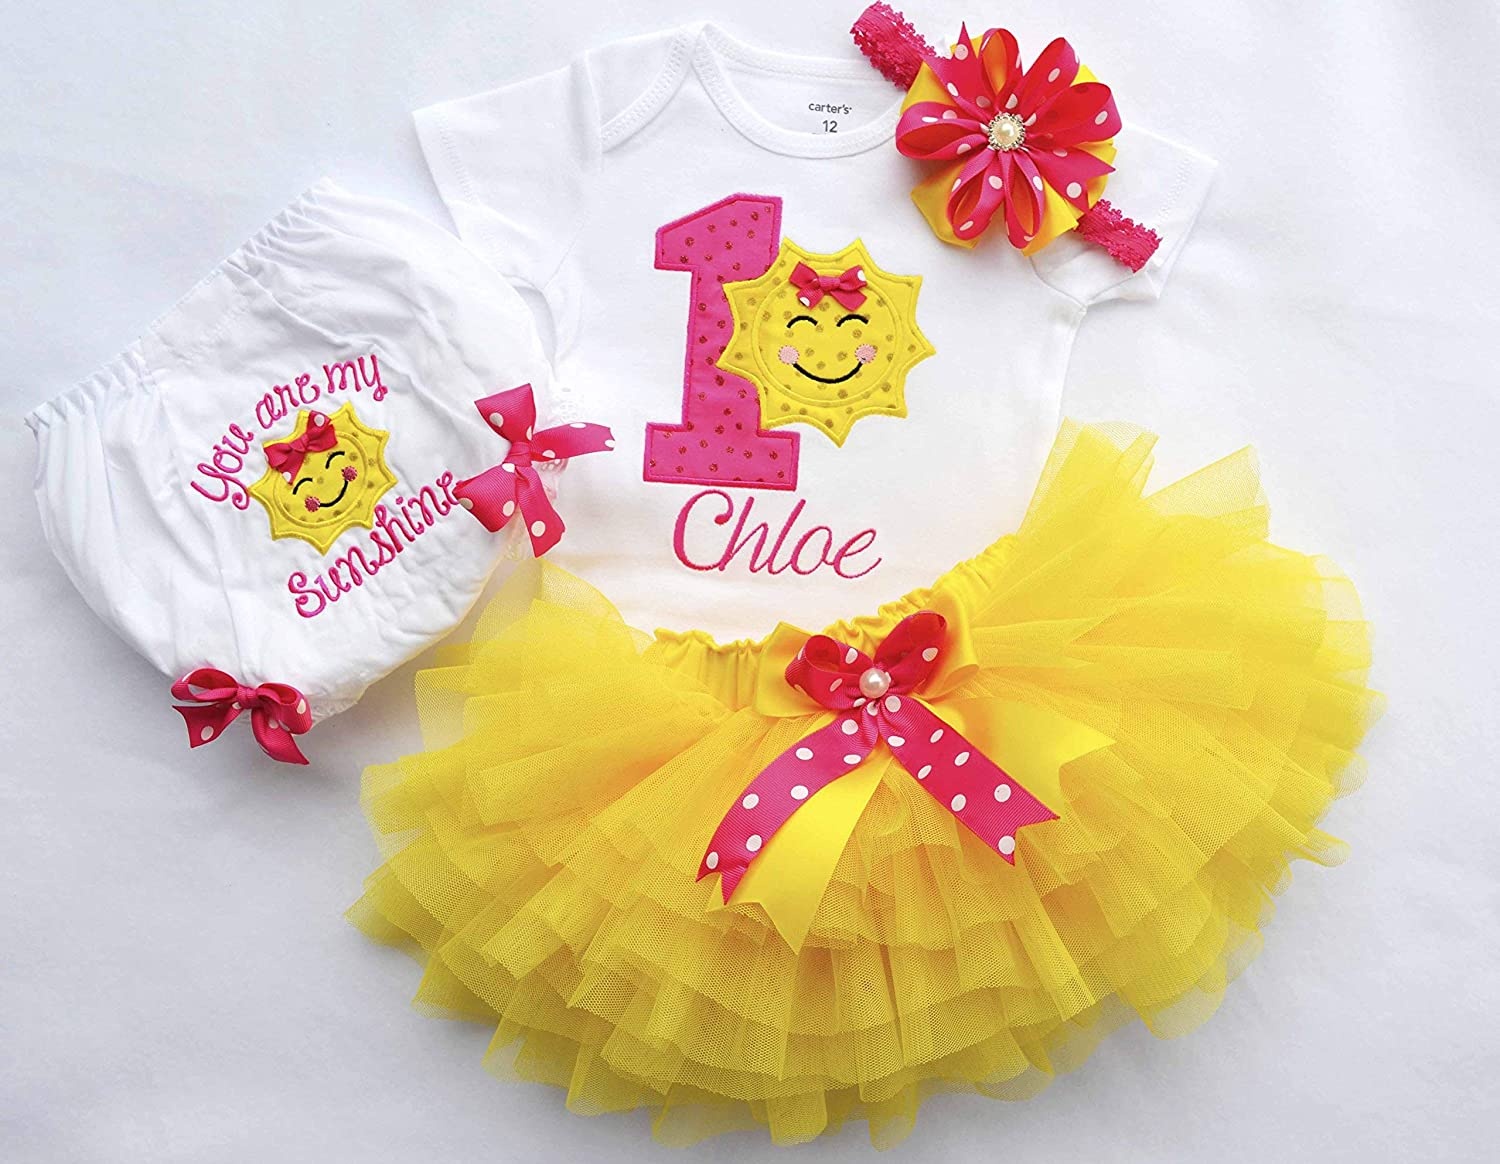 Amazon You Are My Sunshine OutfitFirst Birthday Outfit GirlSunshine OutfitGirls 1st OutfitCake Smash Girl Pink Yellow